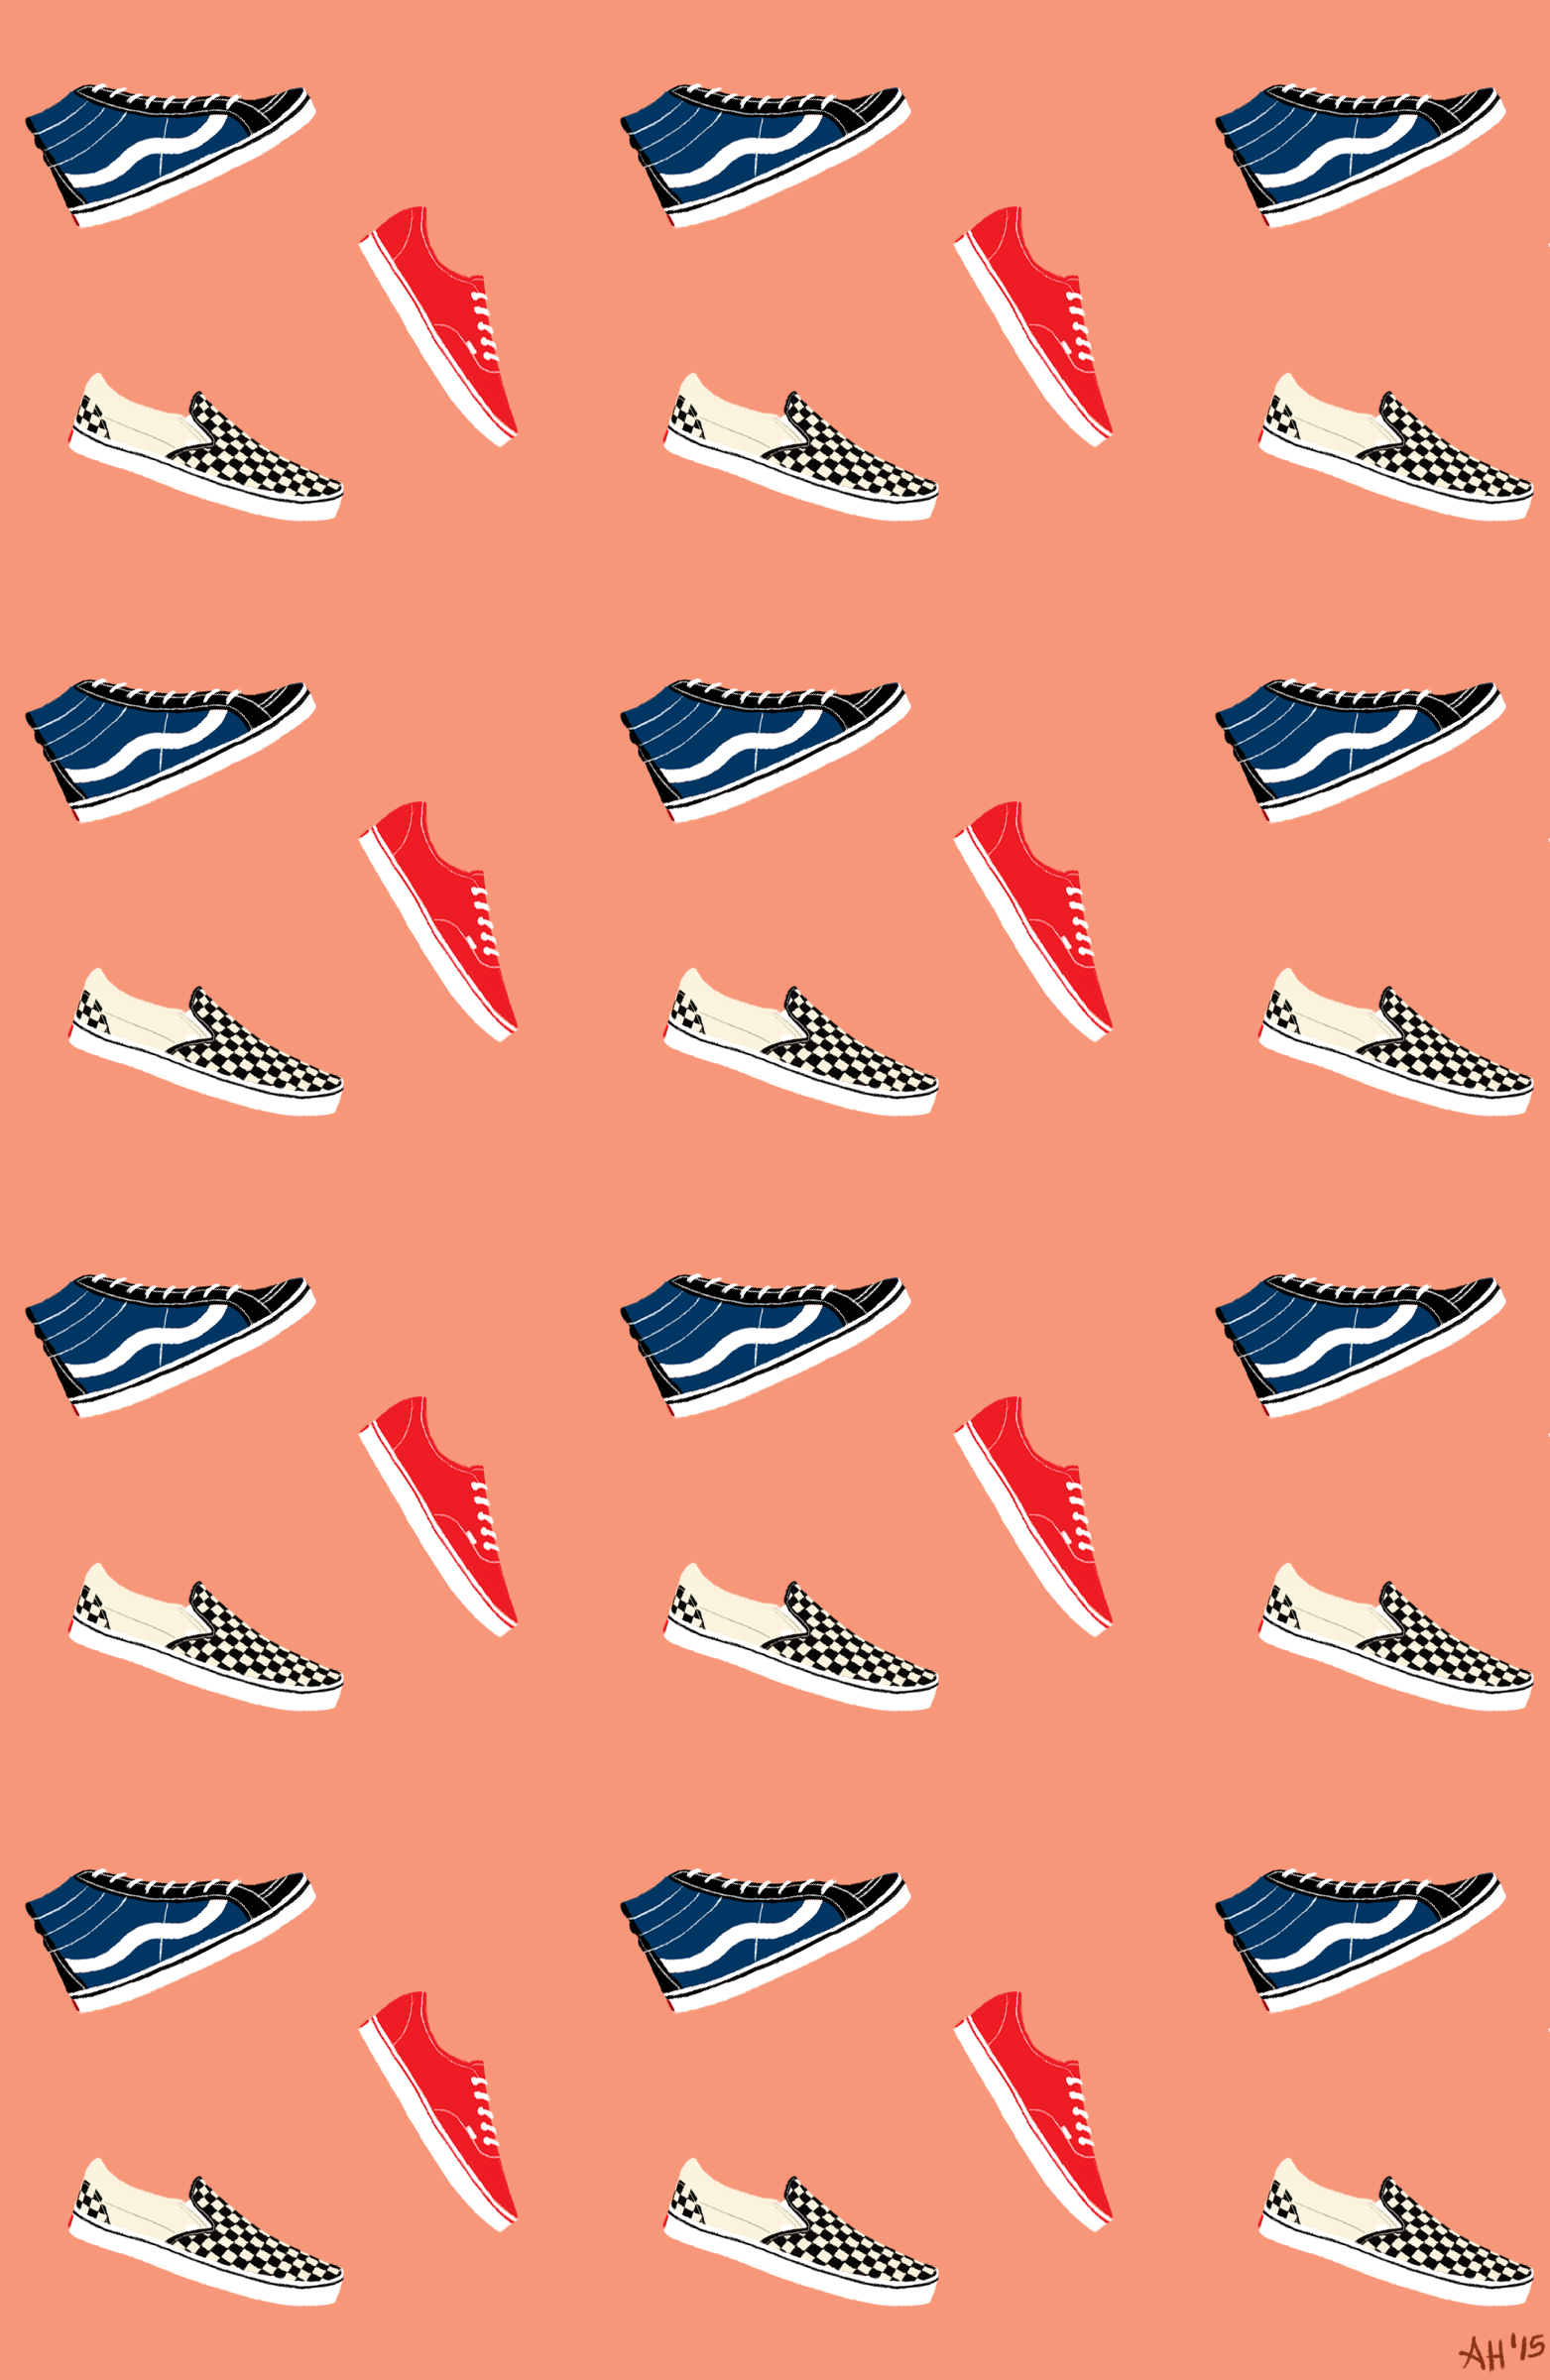 a pattern made of vans sk8 hi vans canvas and vans checkered slip ons by alleanna harris